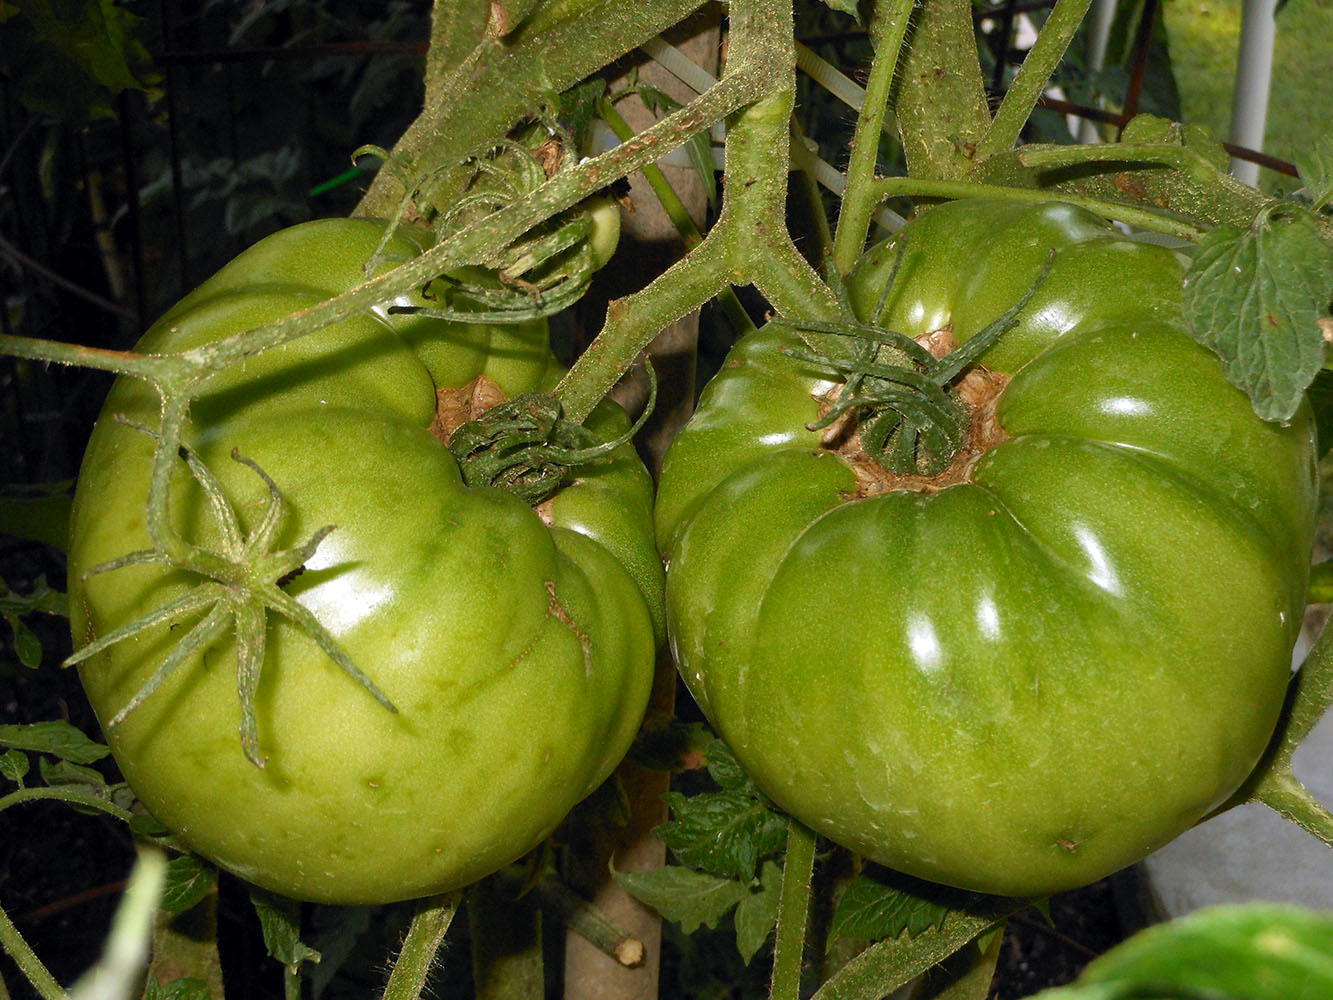 06-25-2015 Garden 02 Better Boy Tomatoes 01